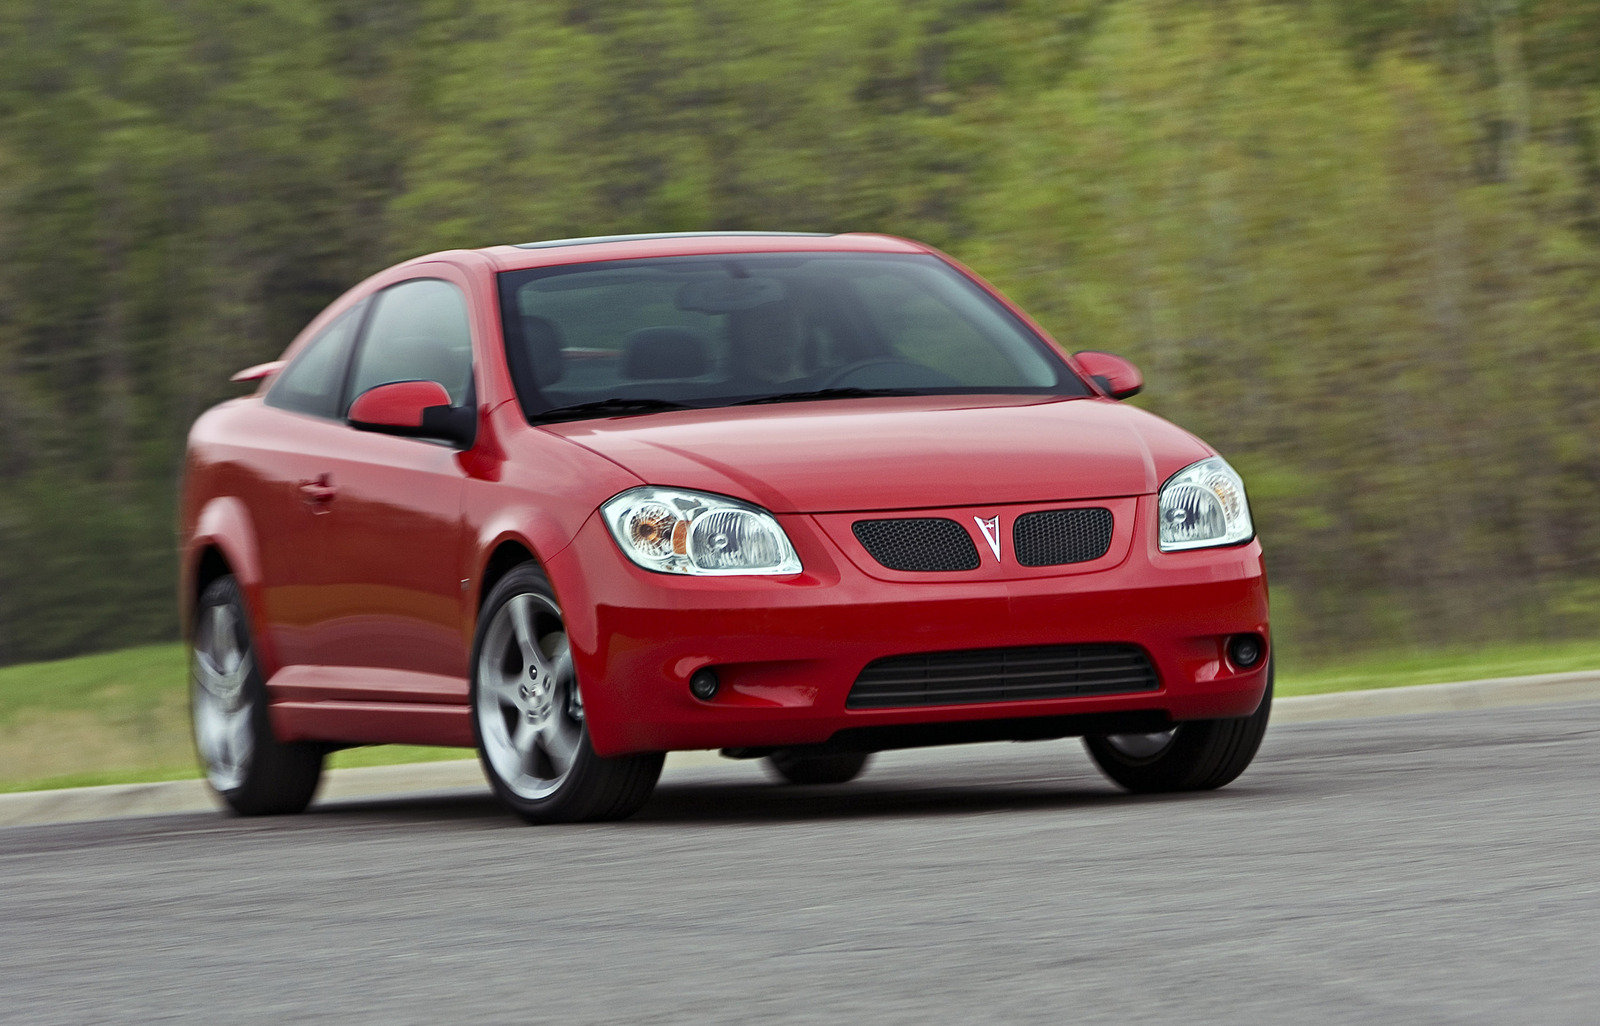 2007 pontiac g5 picture 91007 car review top speed. Black Bedroom Furniture Sets. Home Design Ideas